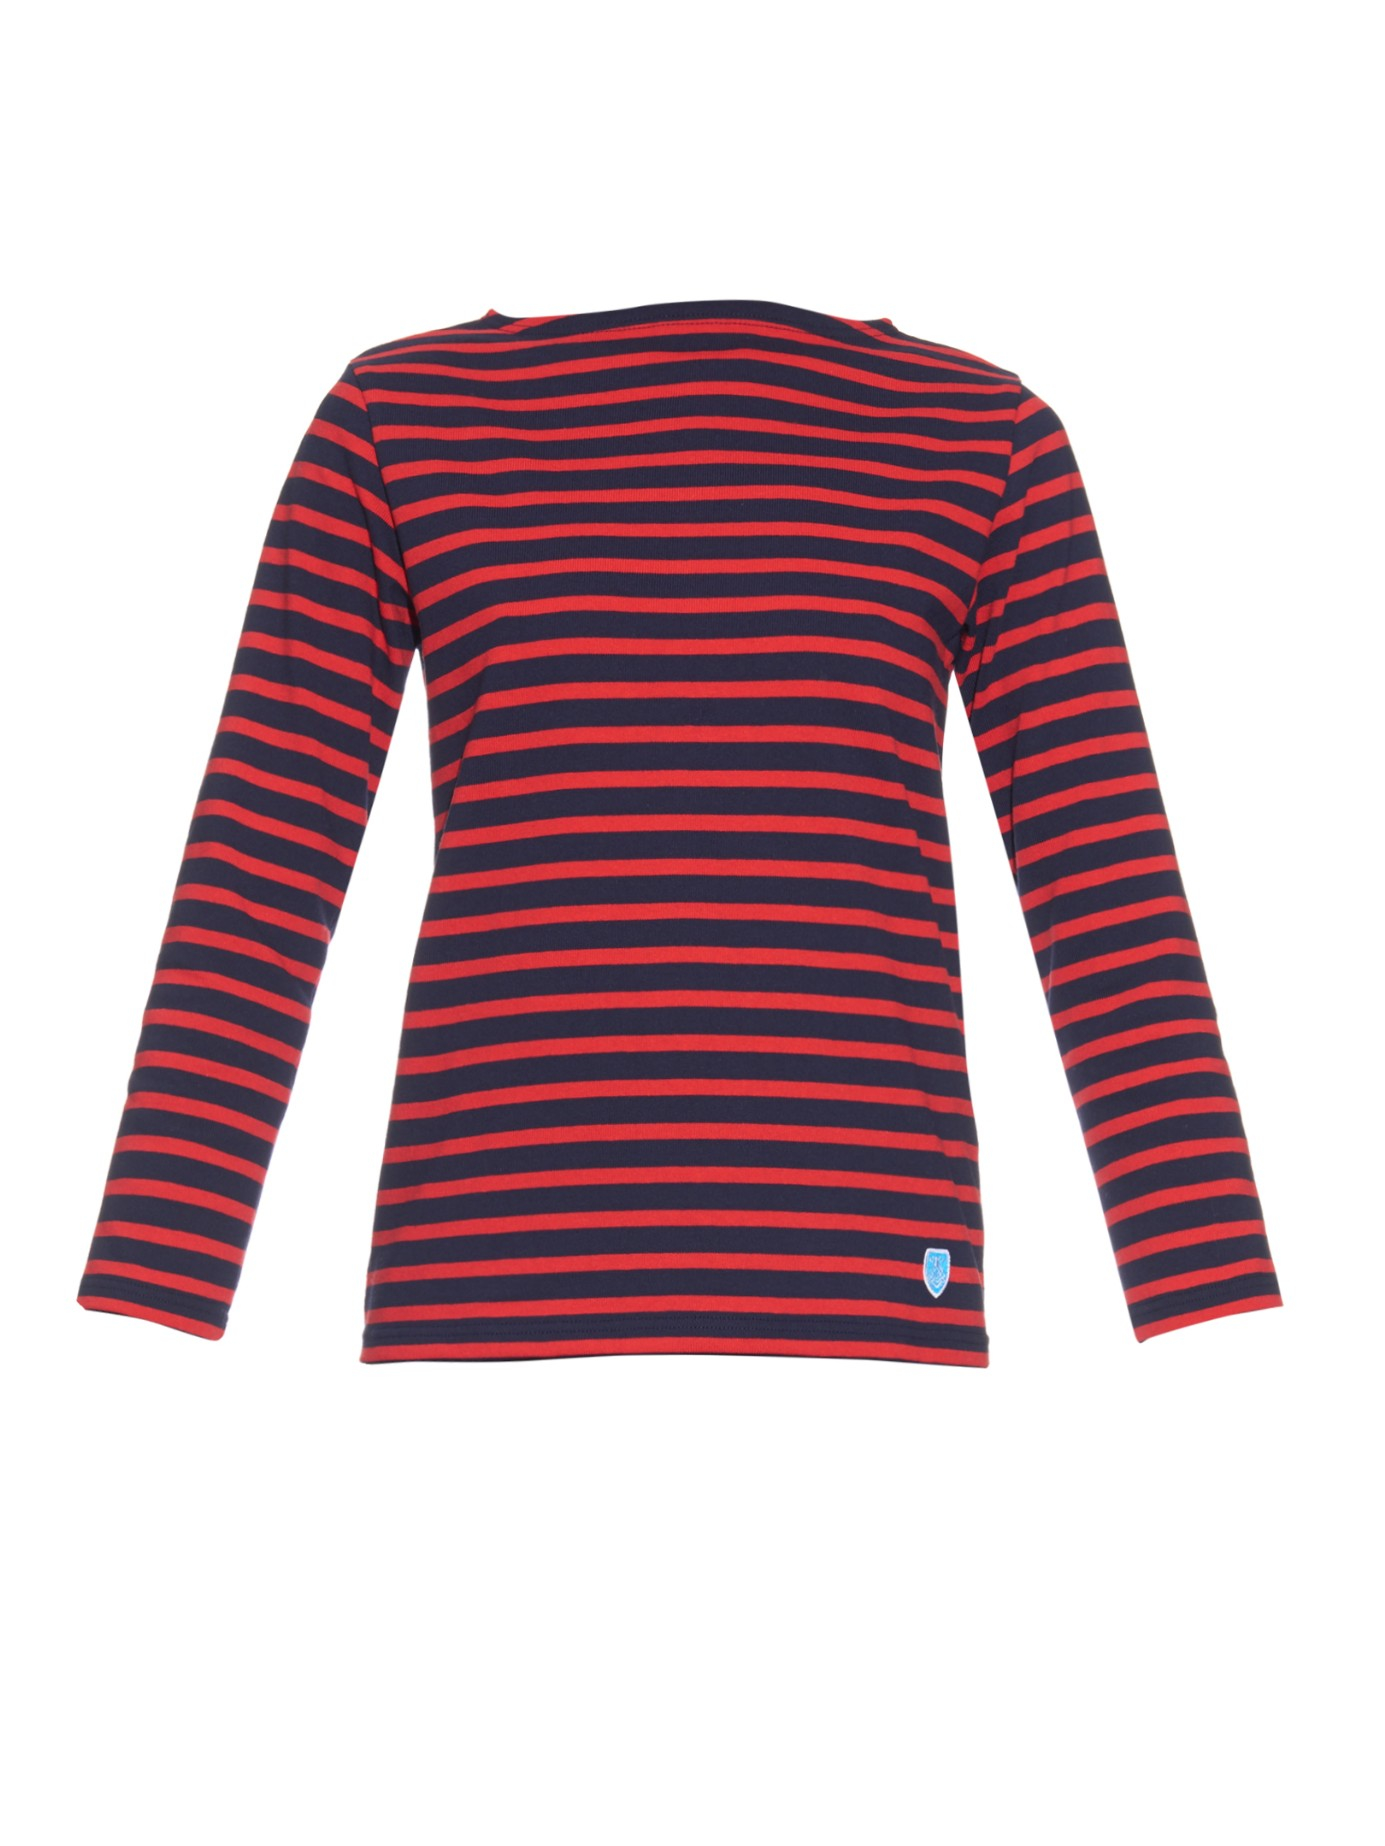 STRIPED LONG SLEEVED TOP Vero Moda - Striped top with long sleeves. - Round neckline. - Rose badge at the front. - Regular fit. - Length: 56 cm in a size S. - The model is cm tall and wearing a size S. 48% Modal, 48% Cotton, 4% Elastane; Machine wash at max 40°C under gentle wash programme.